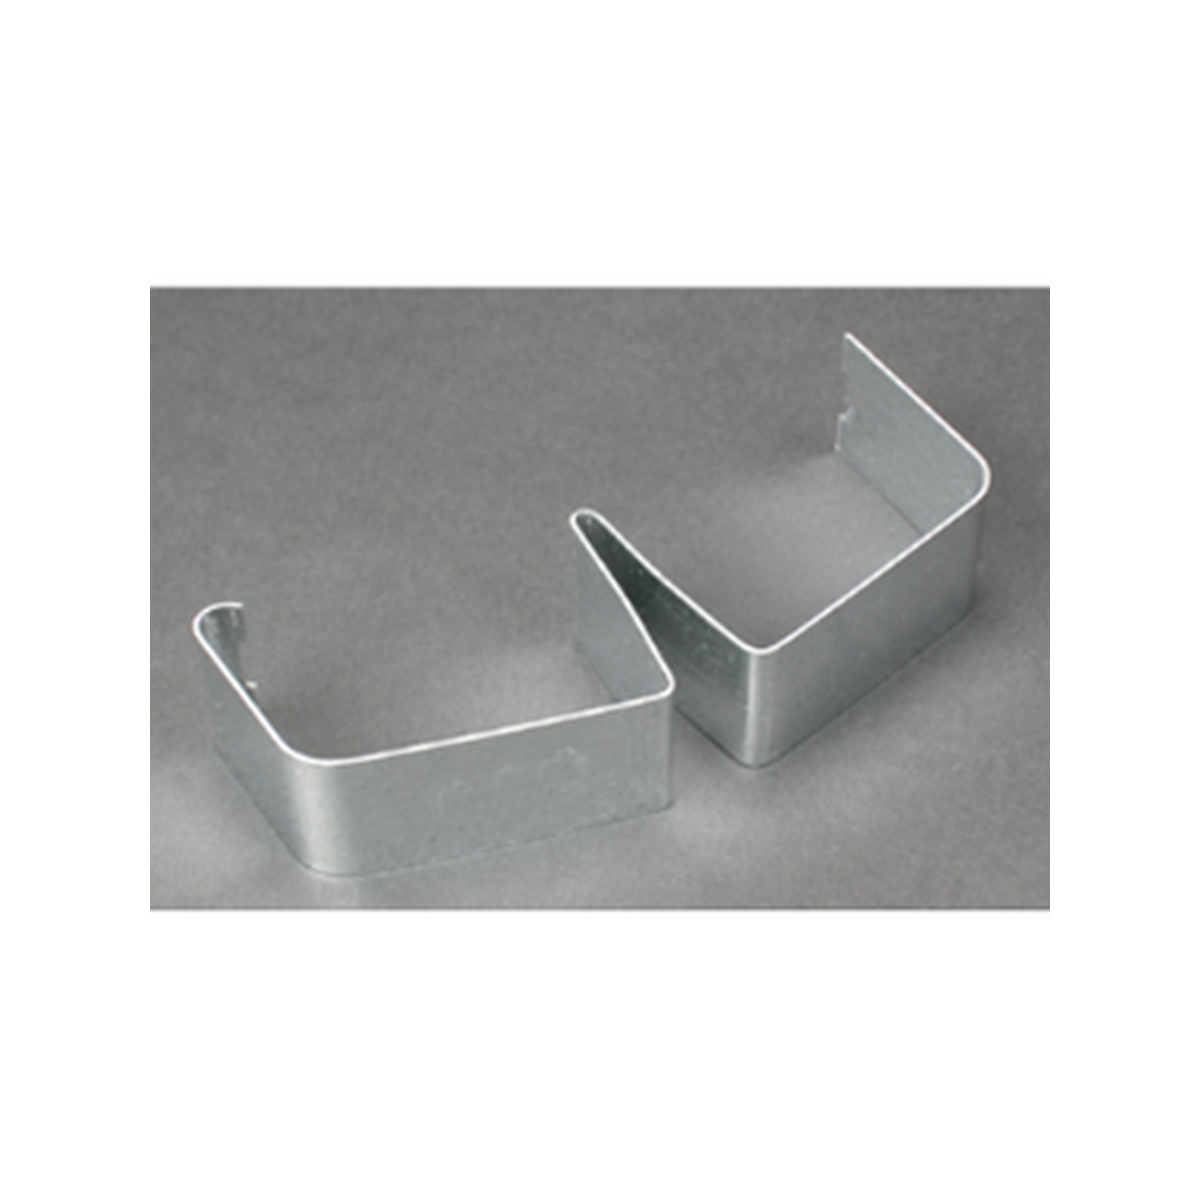 Wiremold 4000 series divider clip fitting -sold in 5 packs